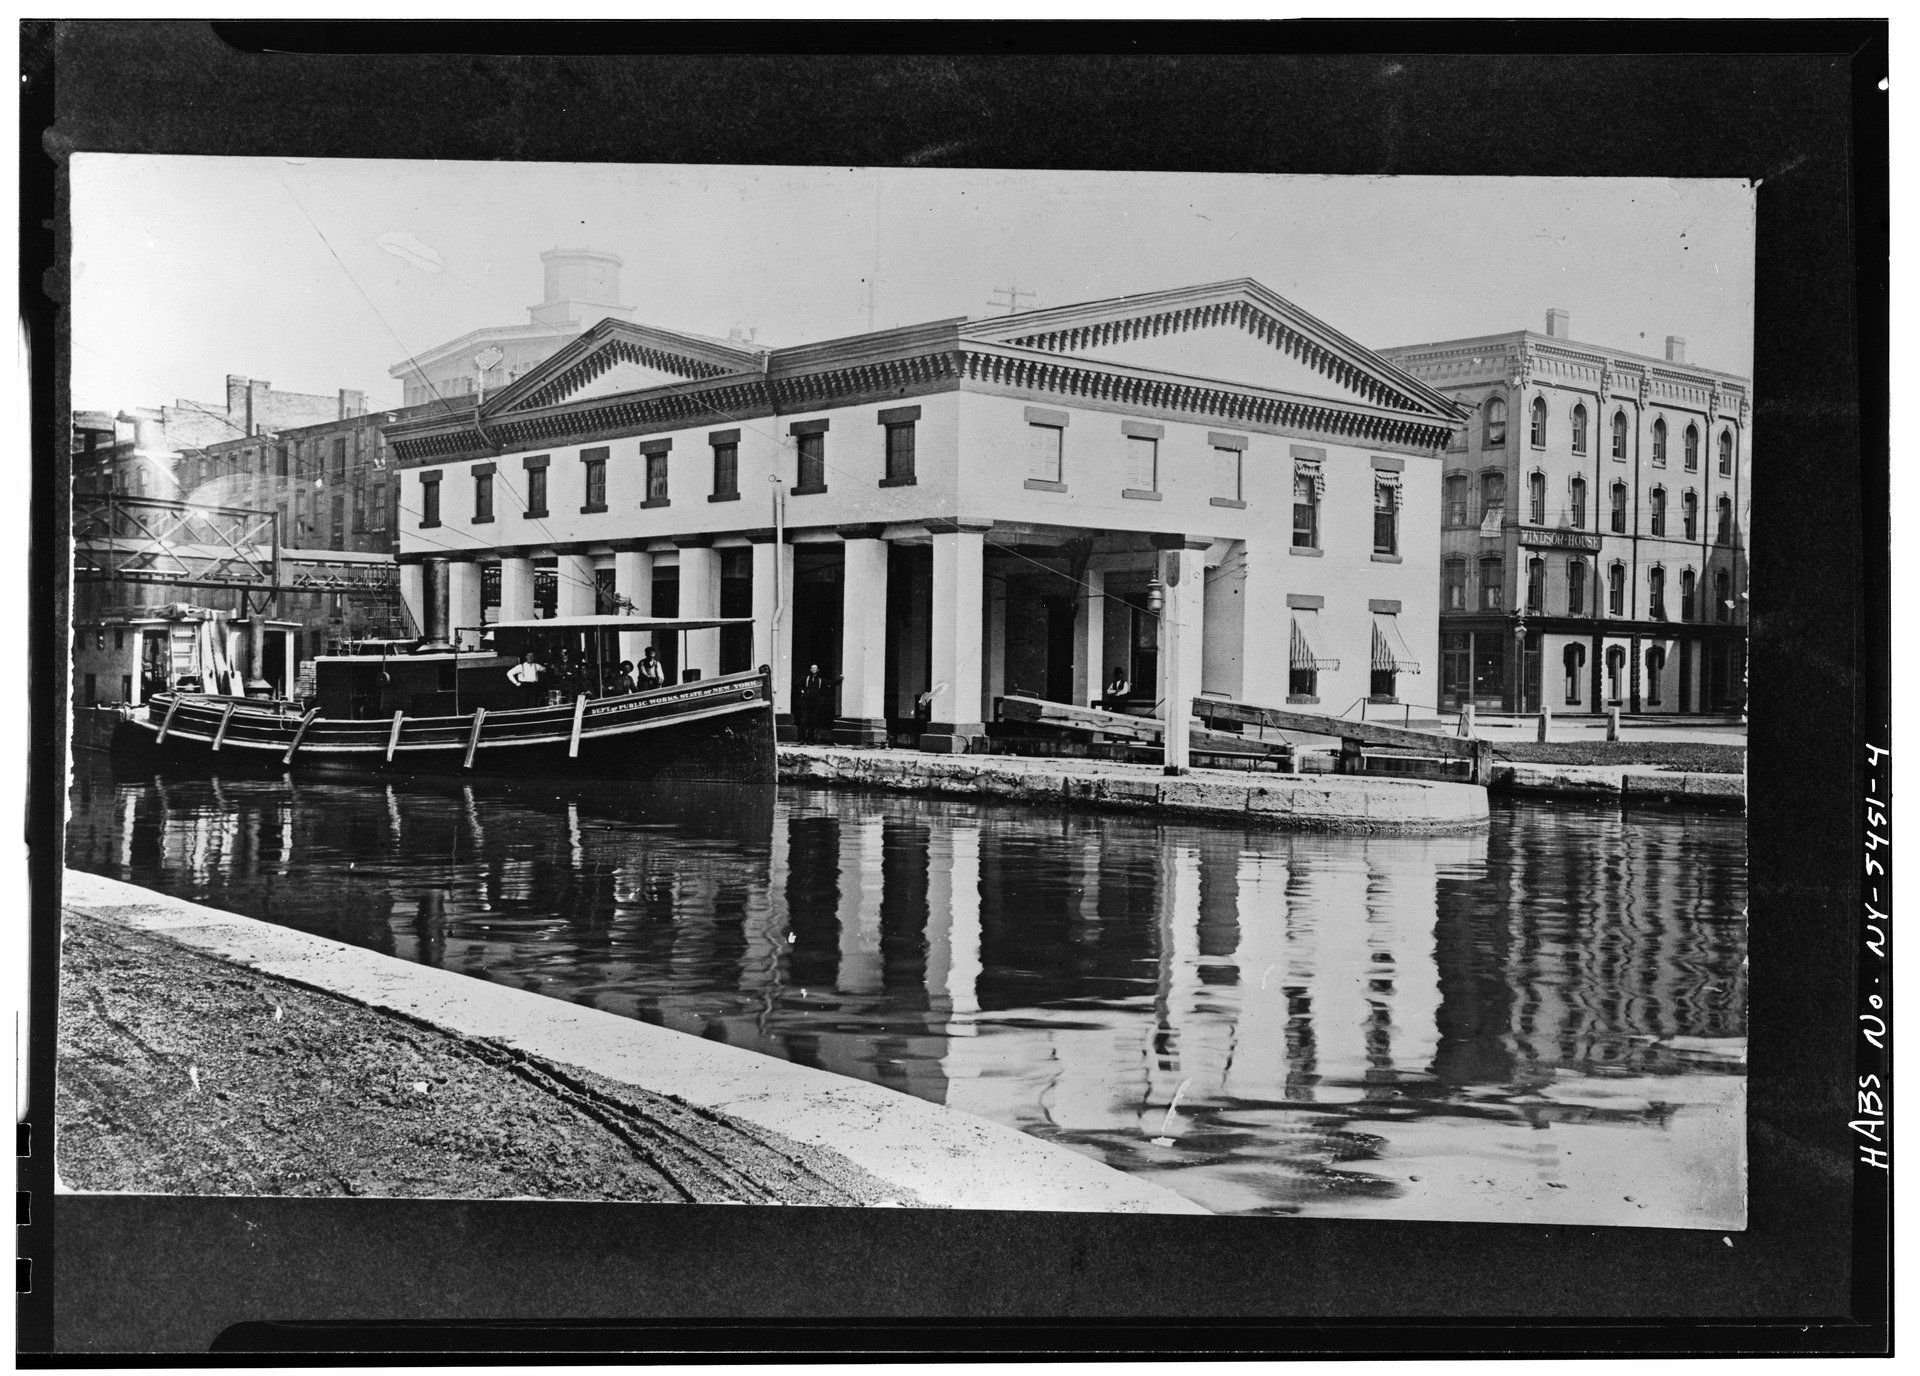 This old photo shows how the building appeared when the canal was still in use.